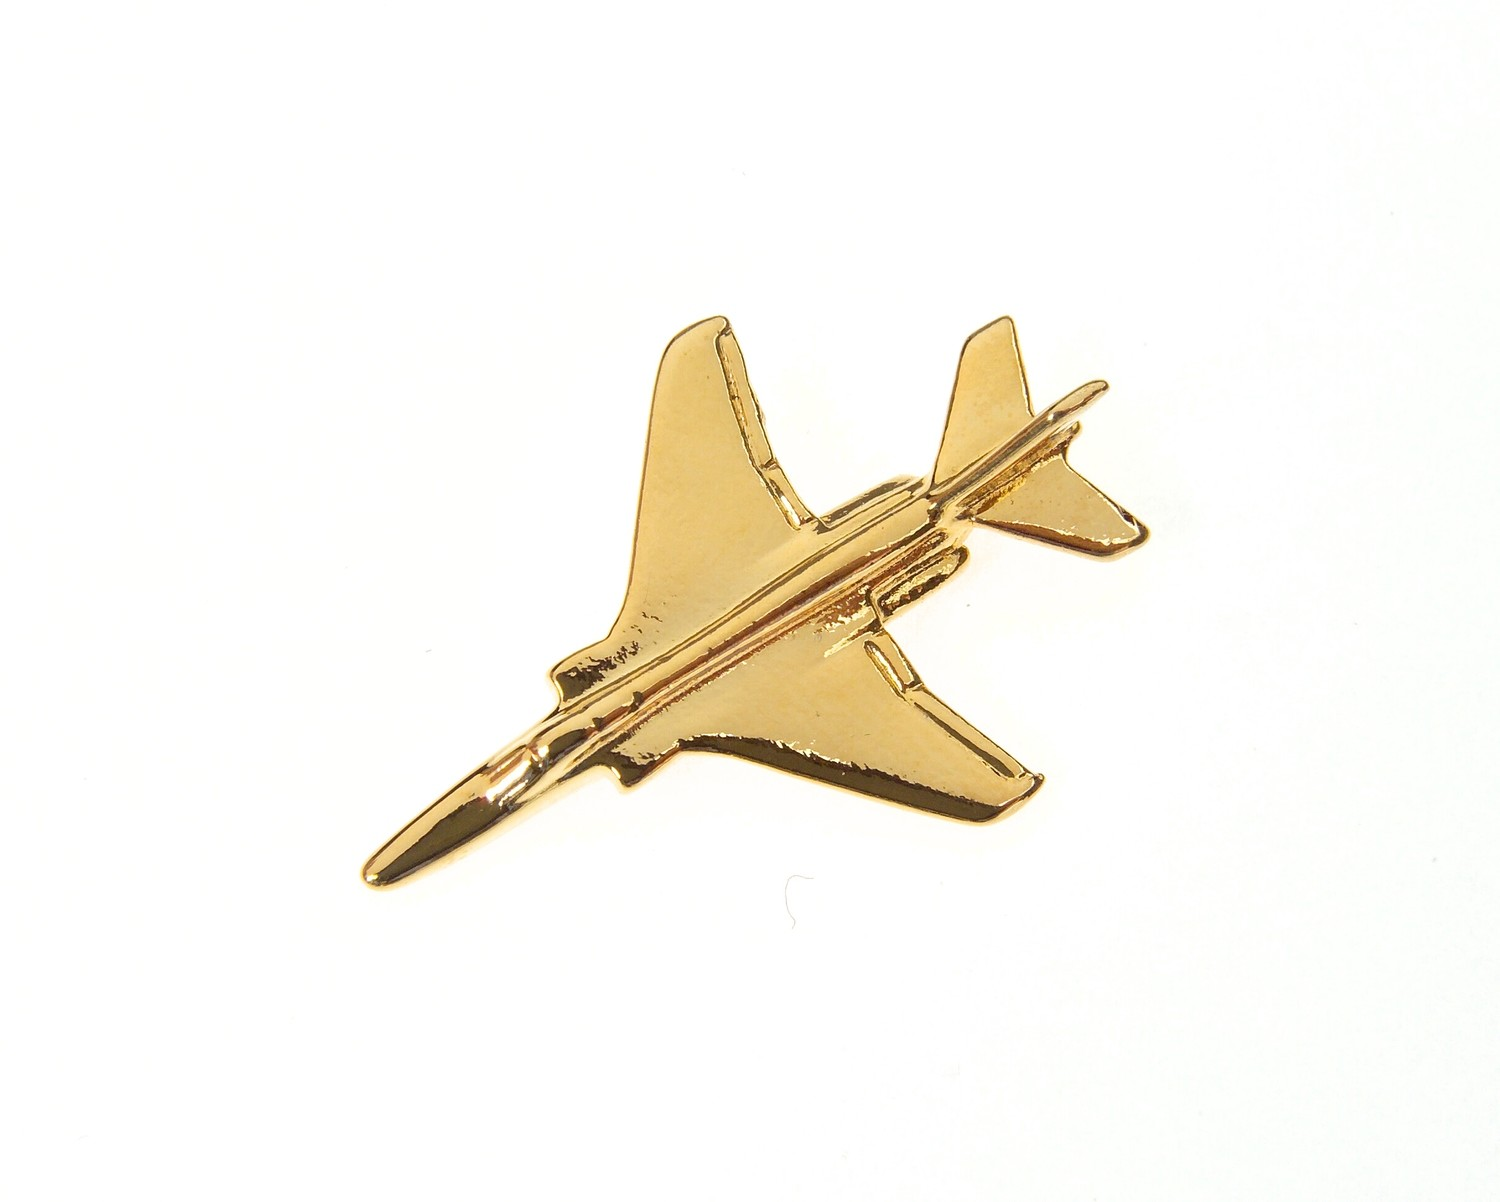 Jaguar Gold Plated Tie / Lapel Pin